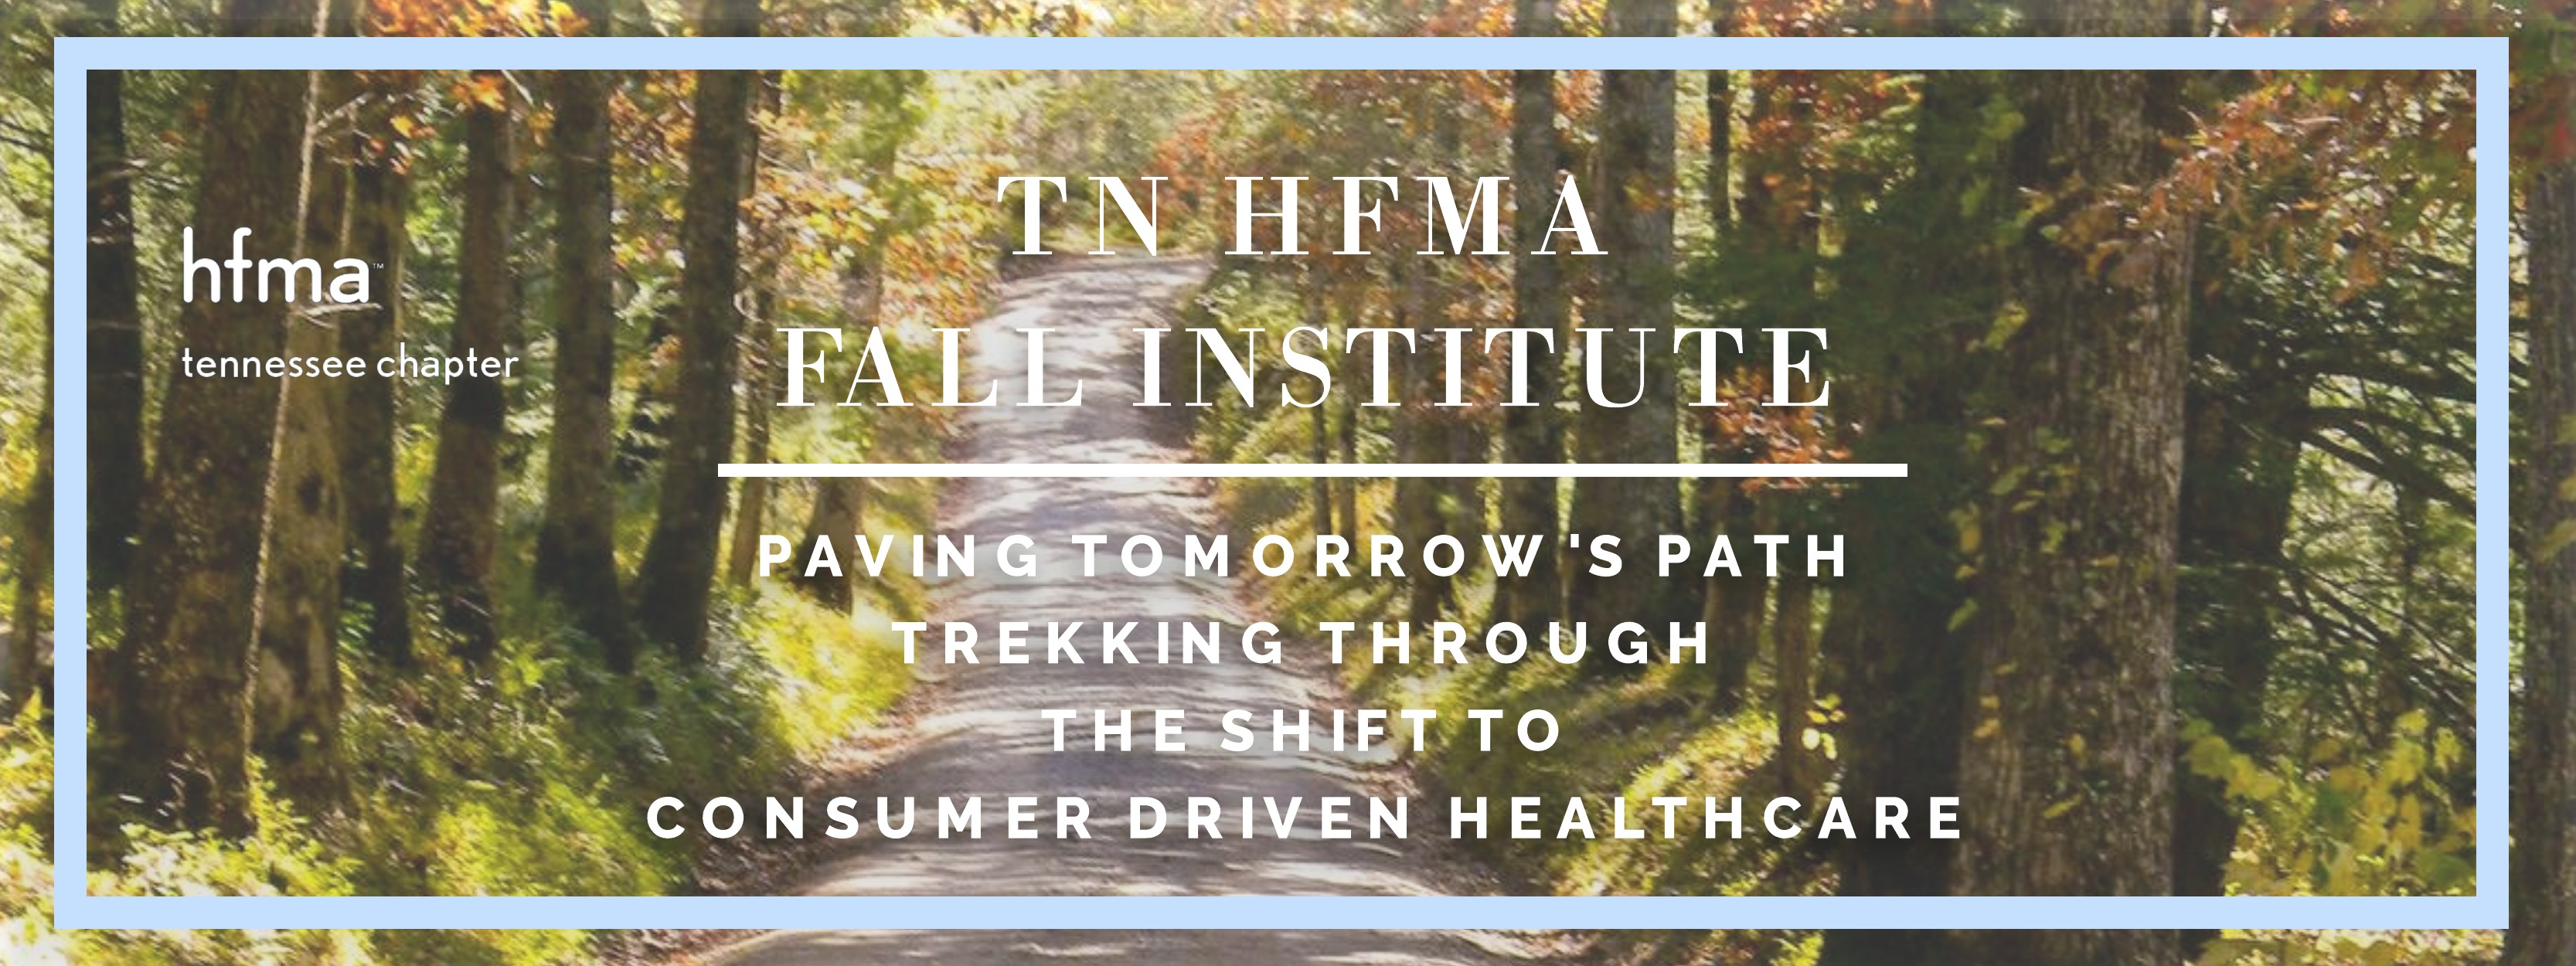 2018 TN HFMA Fall Institute Gatlinburg, TN